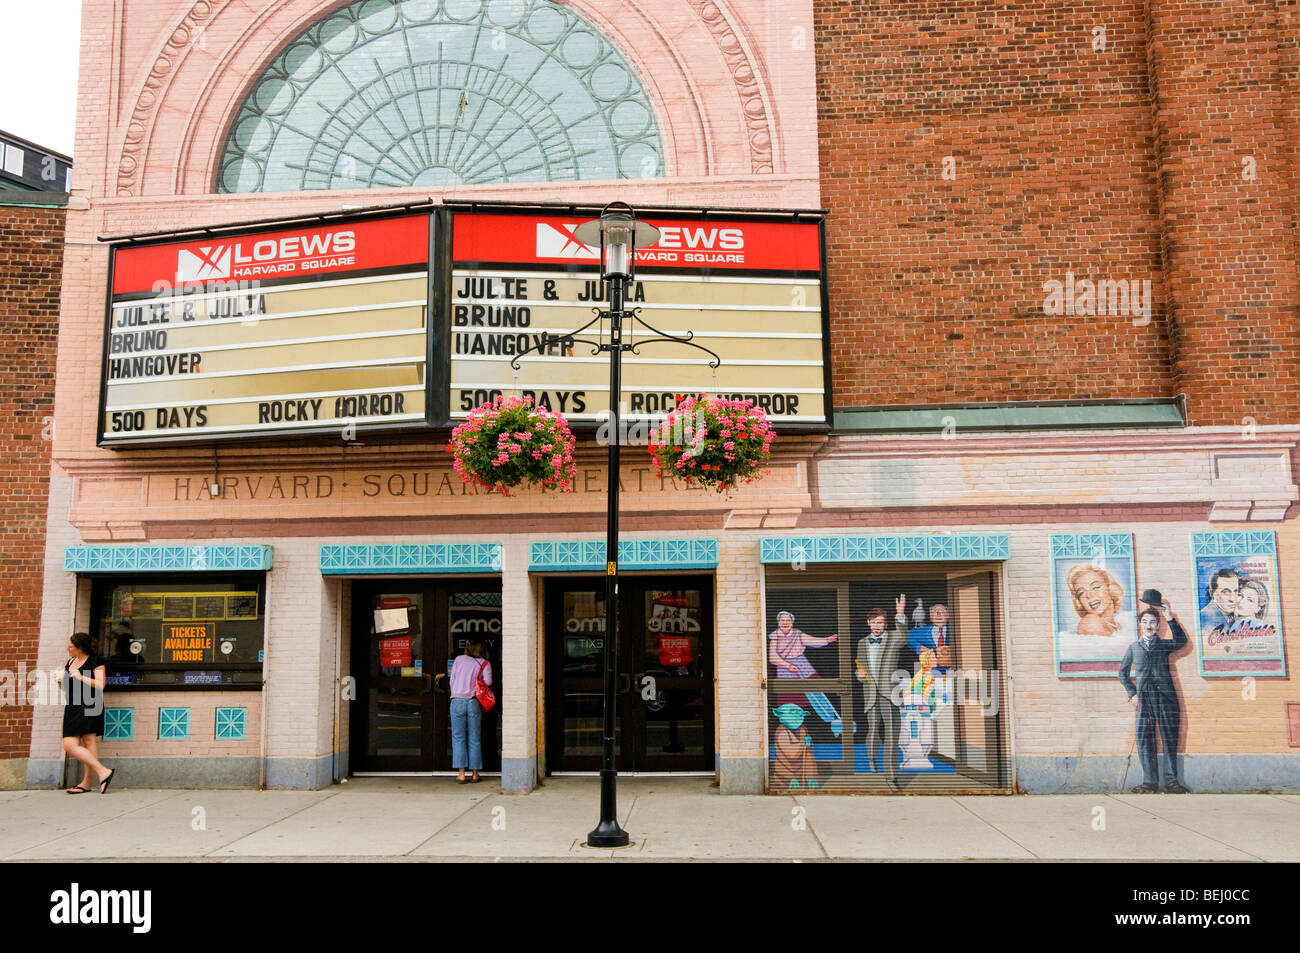 Kino Cambridge, Massachusetts Stockbild